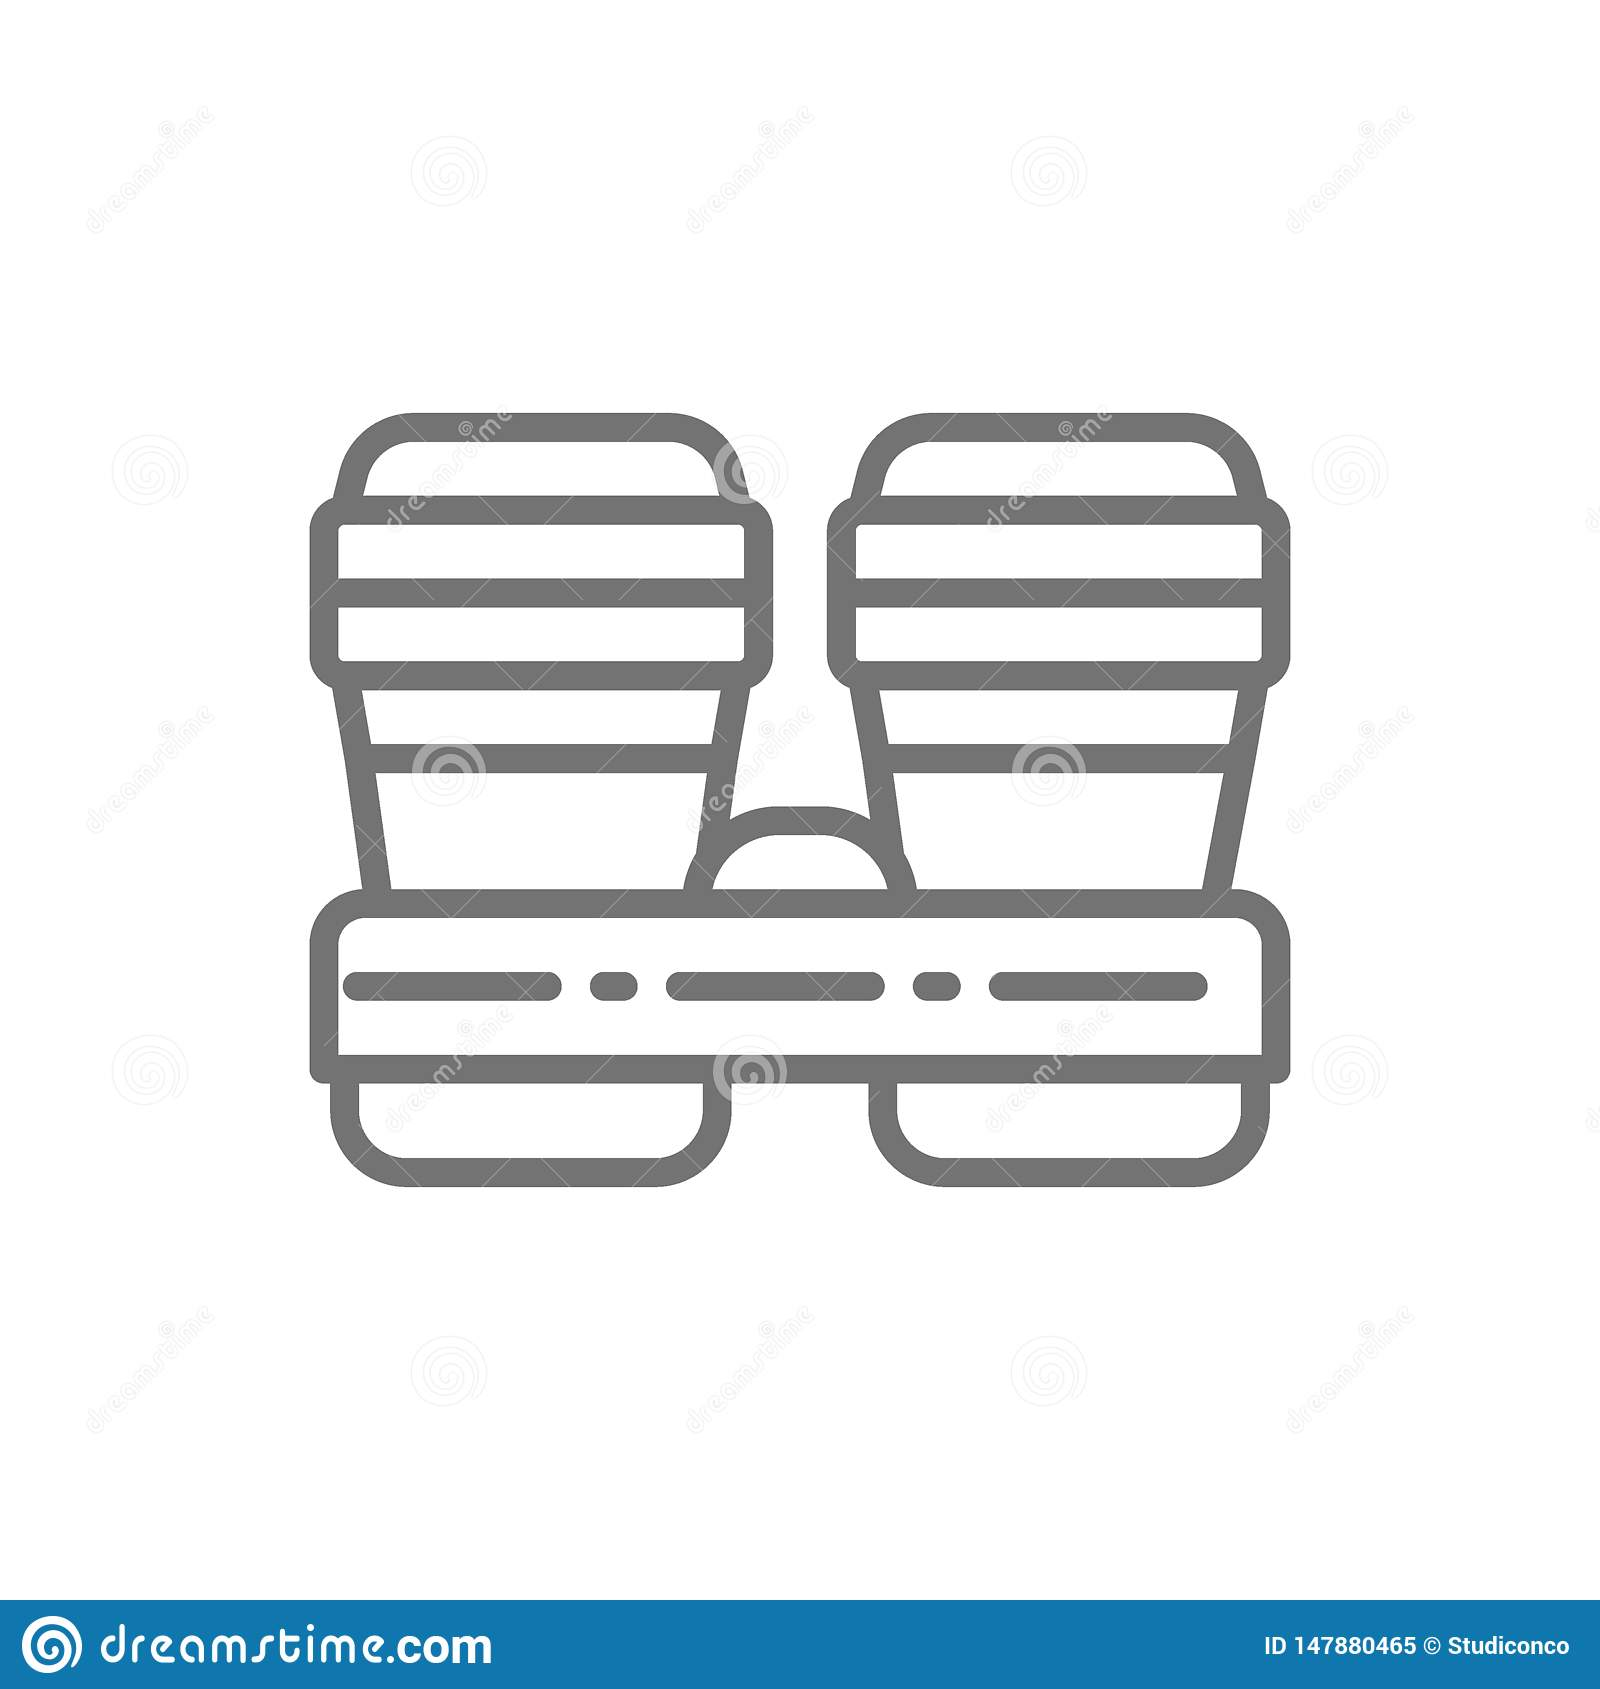 778ac38bd84 Coffee In Cardboard Cups, Takeaway Line Icon. Stock Vector ...